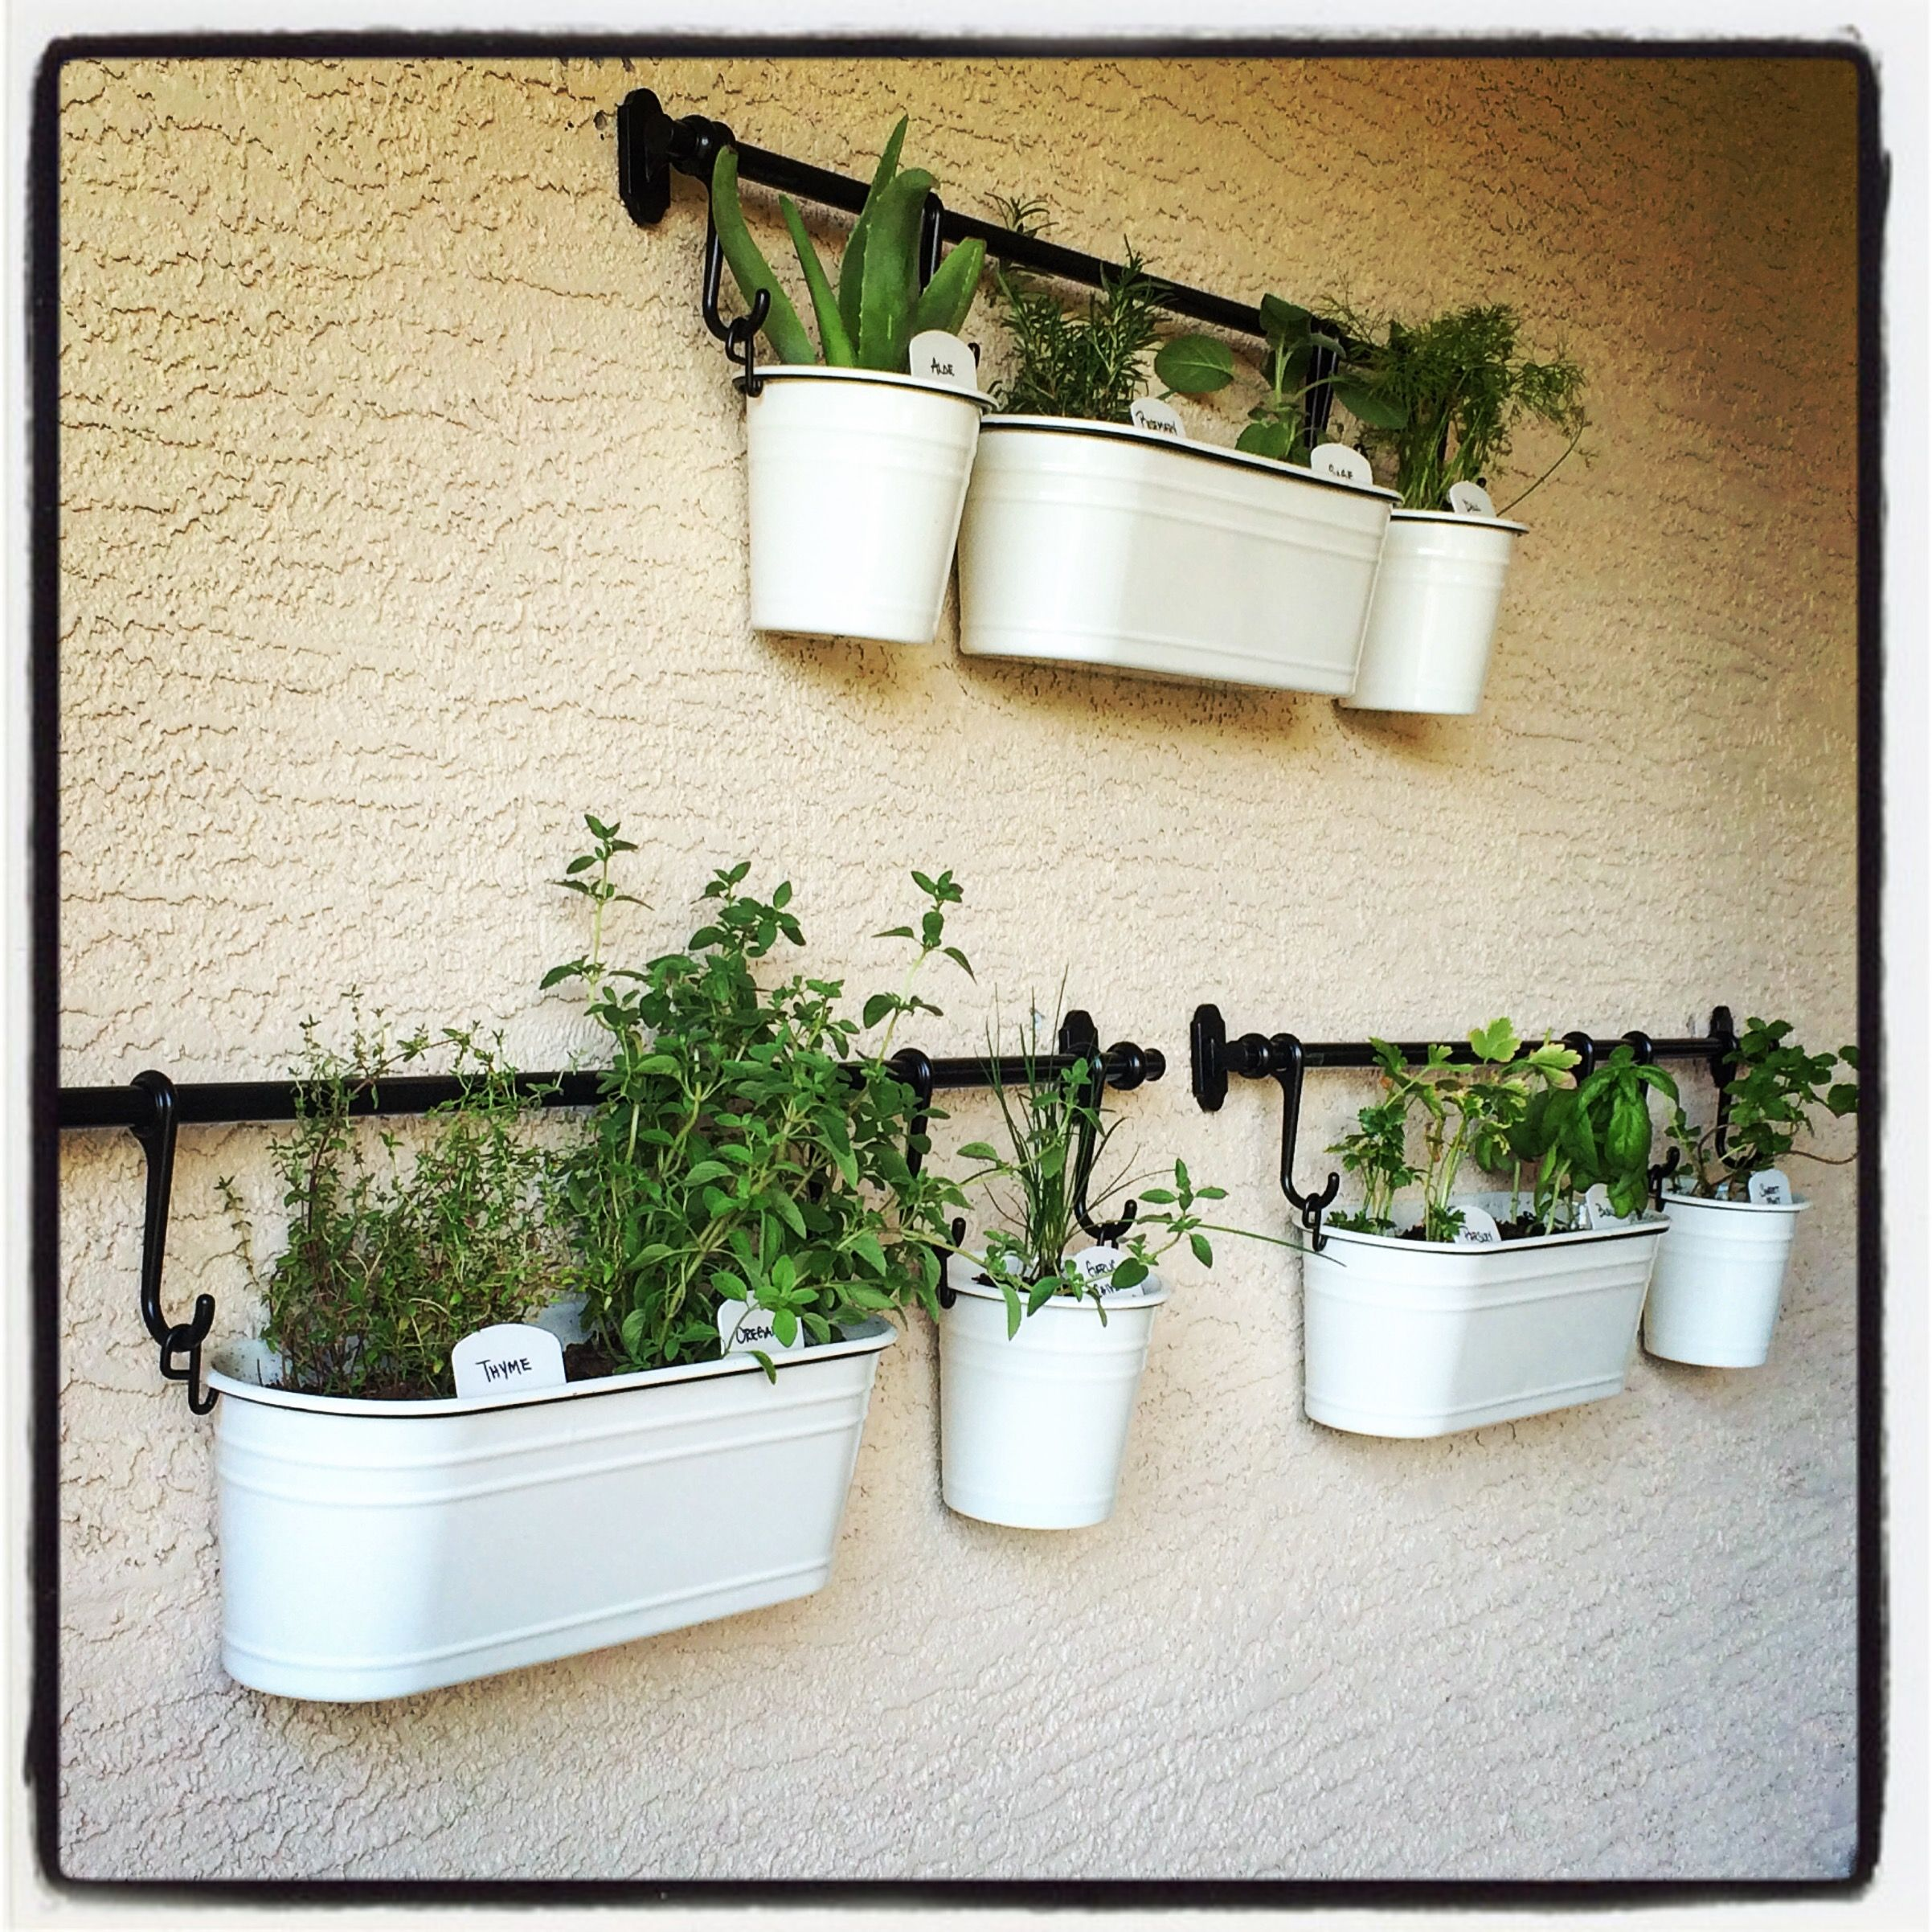 Balcony Planter Ikea My Patio Herb Garden Made Using The Ikea Fintorp Line